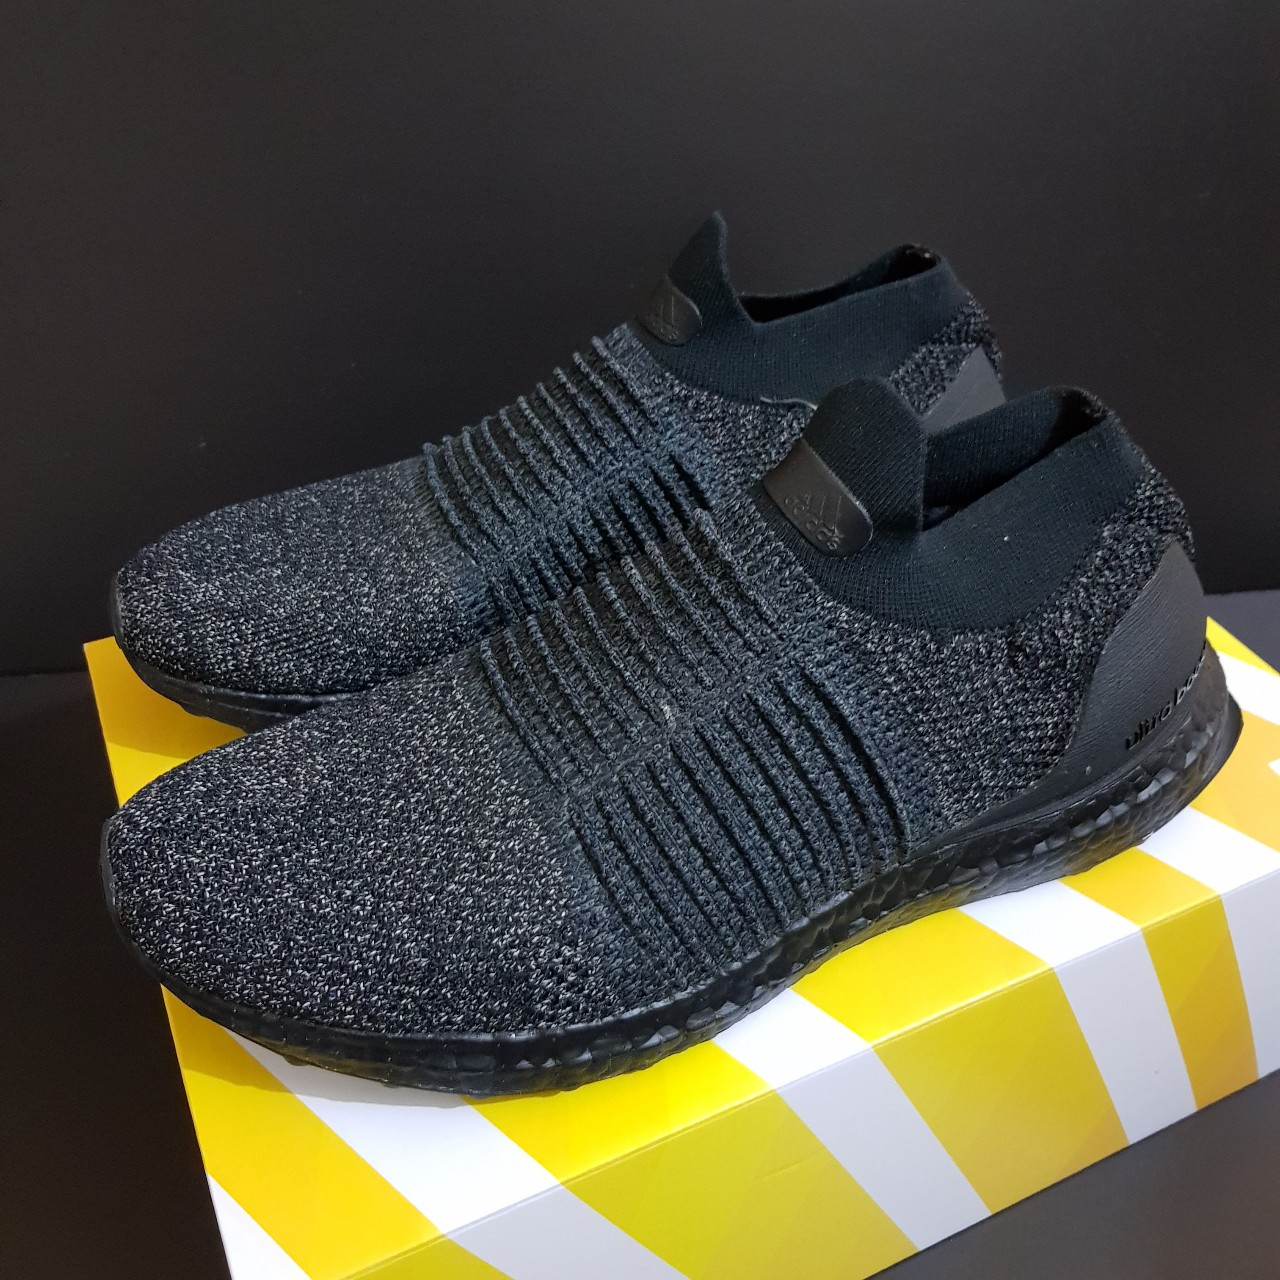 buy popular 639dd 2c1e7 Adidas UltraBOOST Laceless LTD - Triple Black - Size... - Depop